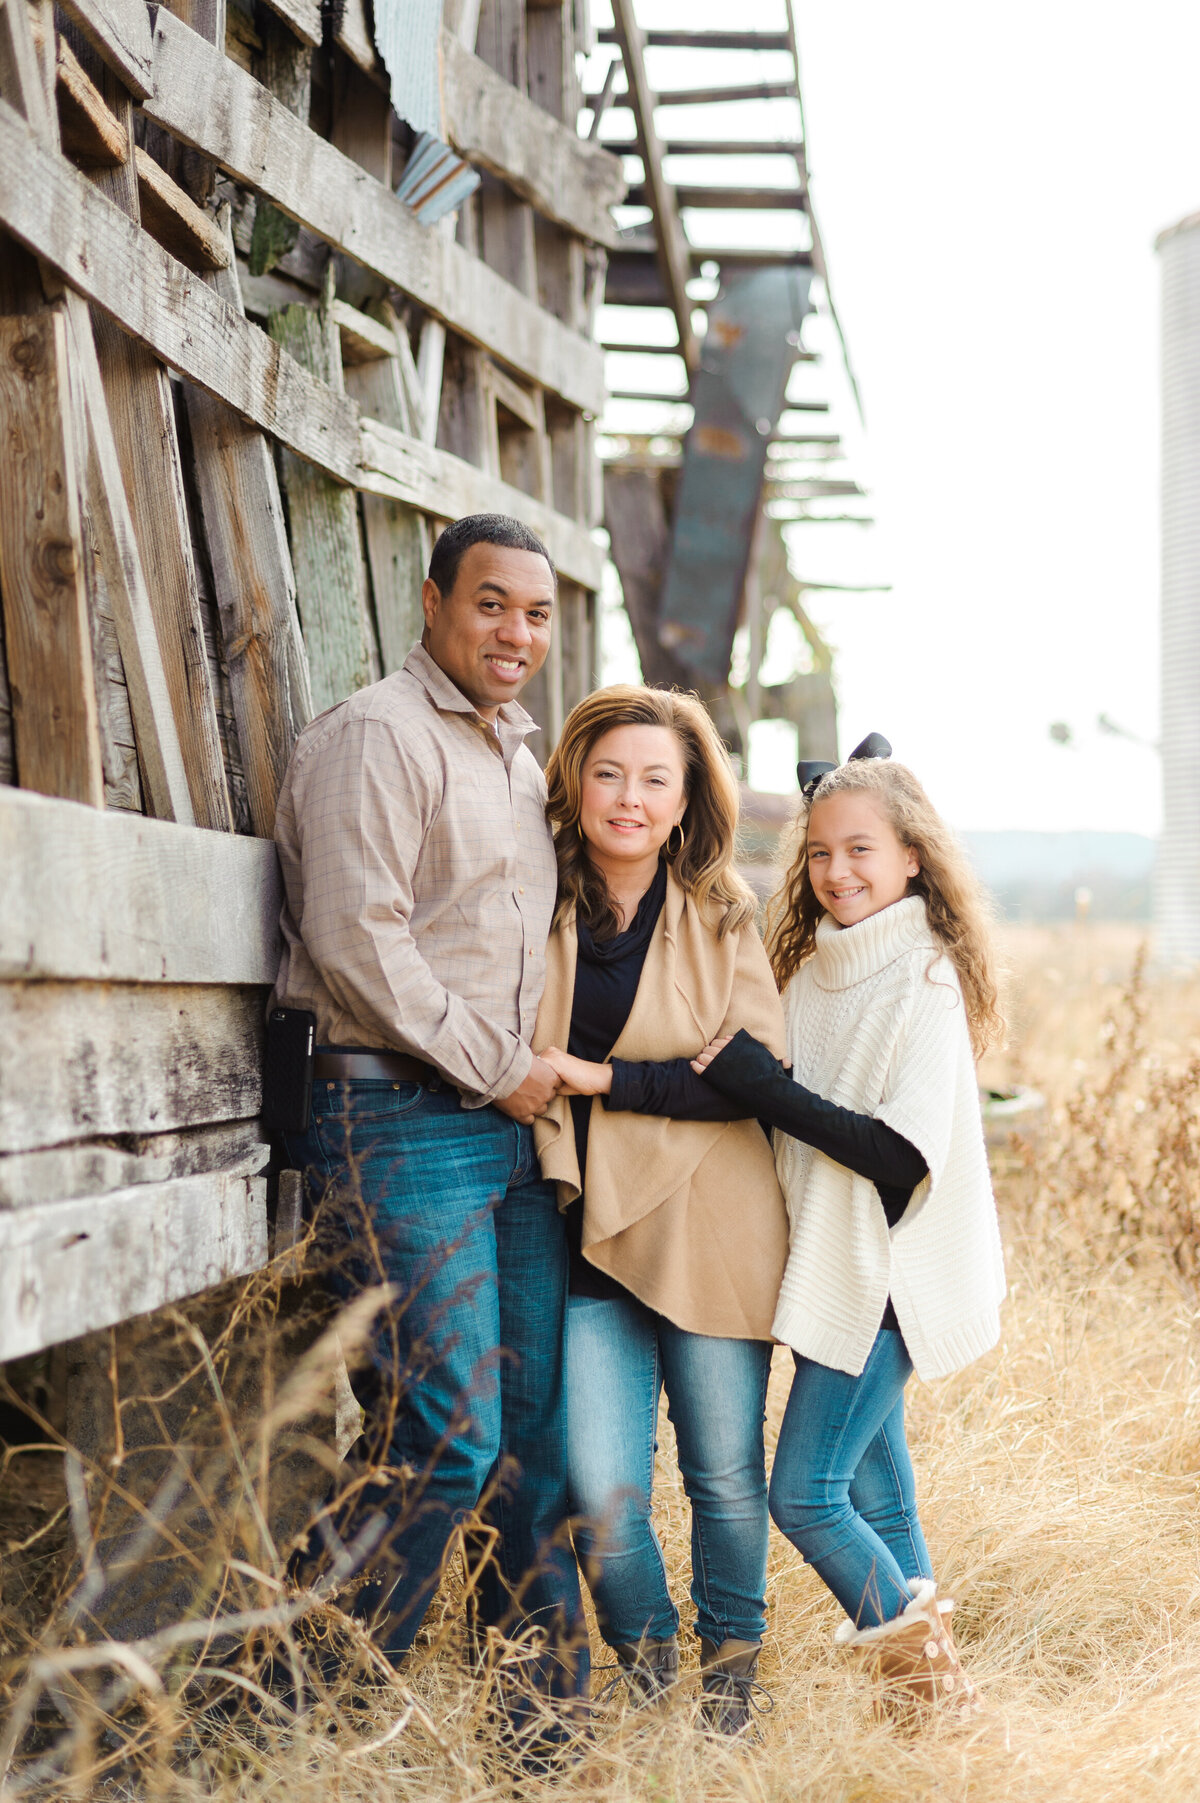 family-photographer-virginia-beach-tonya-volk-photography-2-2